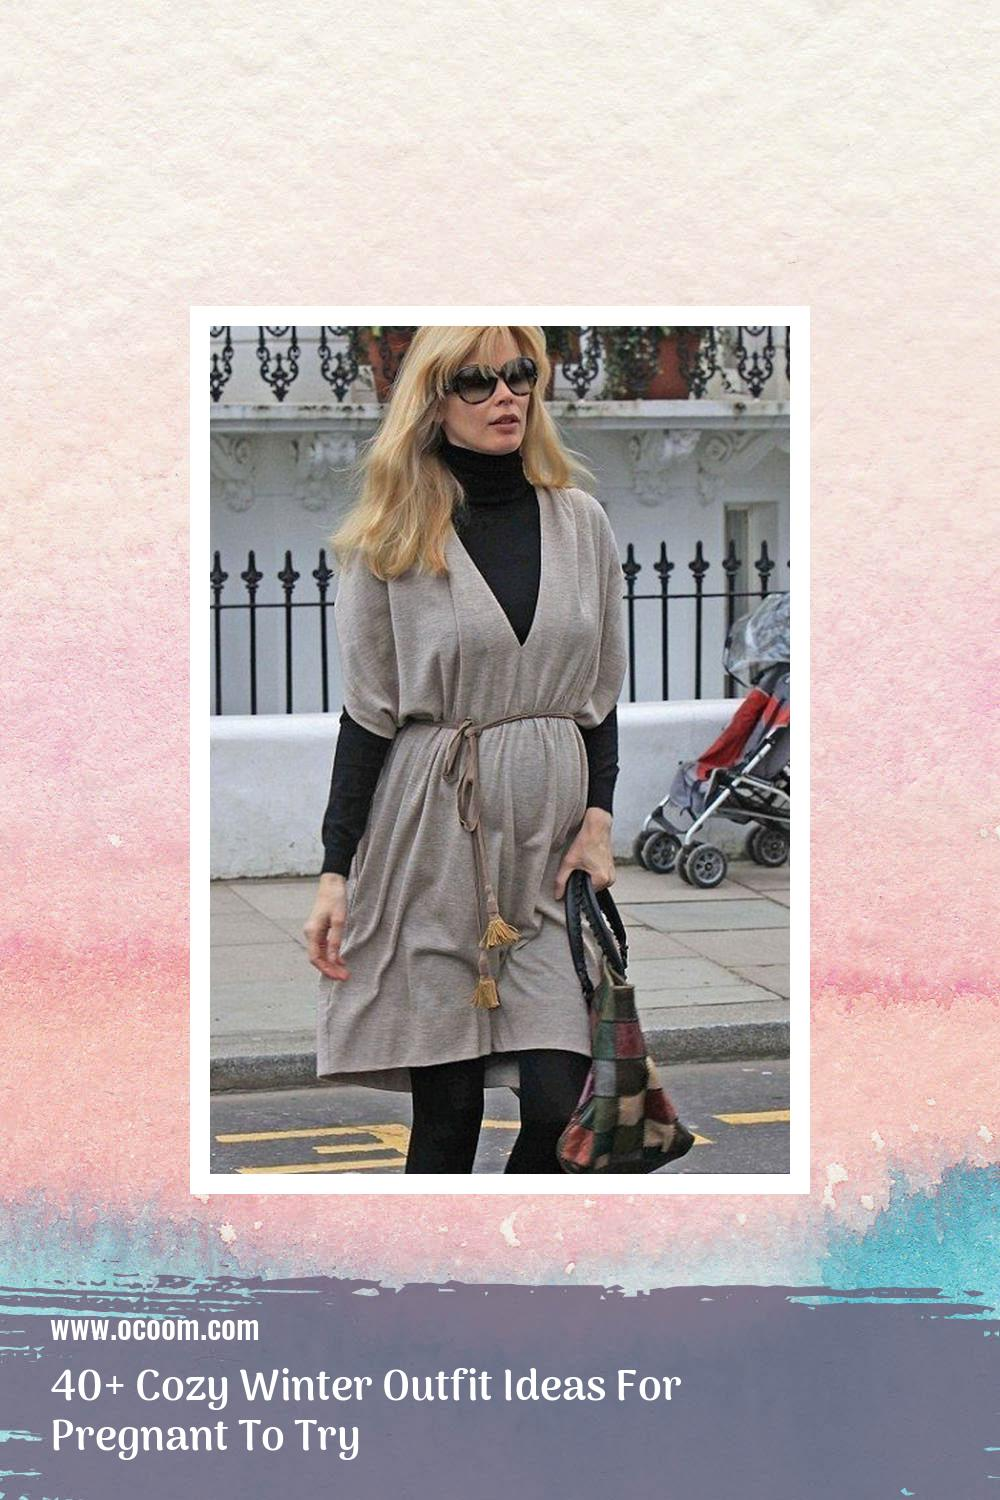 40+ Cozy Winter Outfit Ideas For Pregnant To Try 24